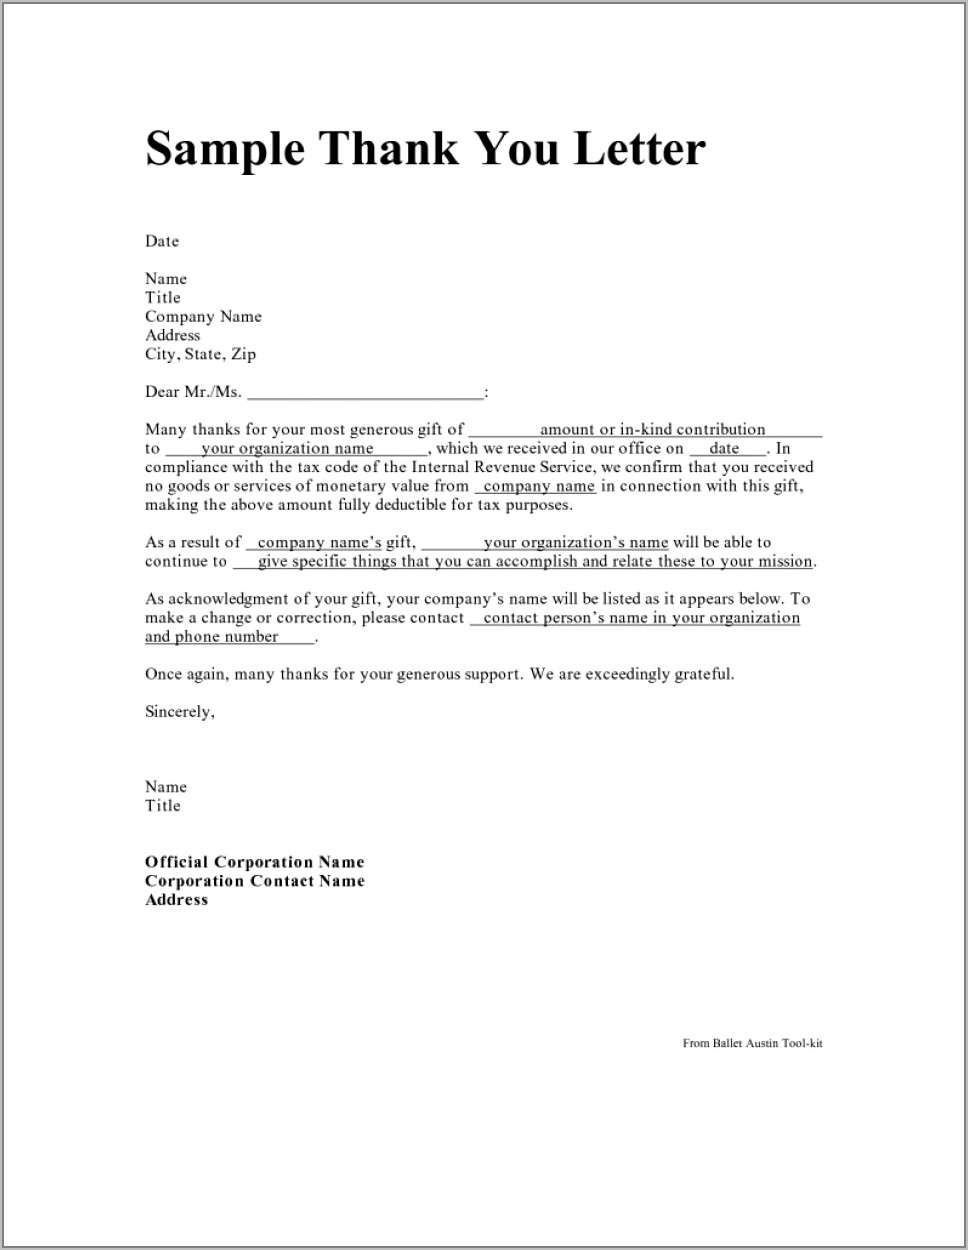 Sample Tax Deductible Donation Thank You Letter